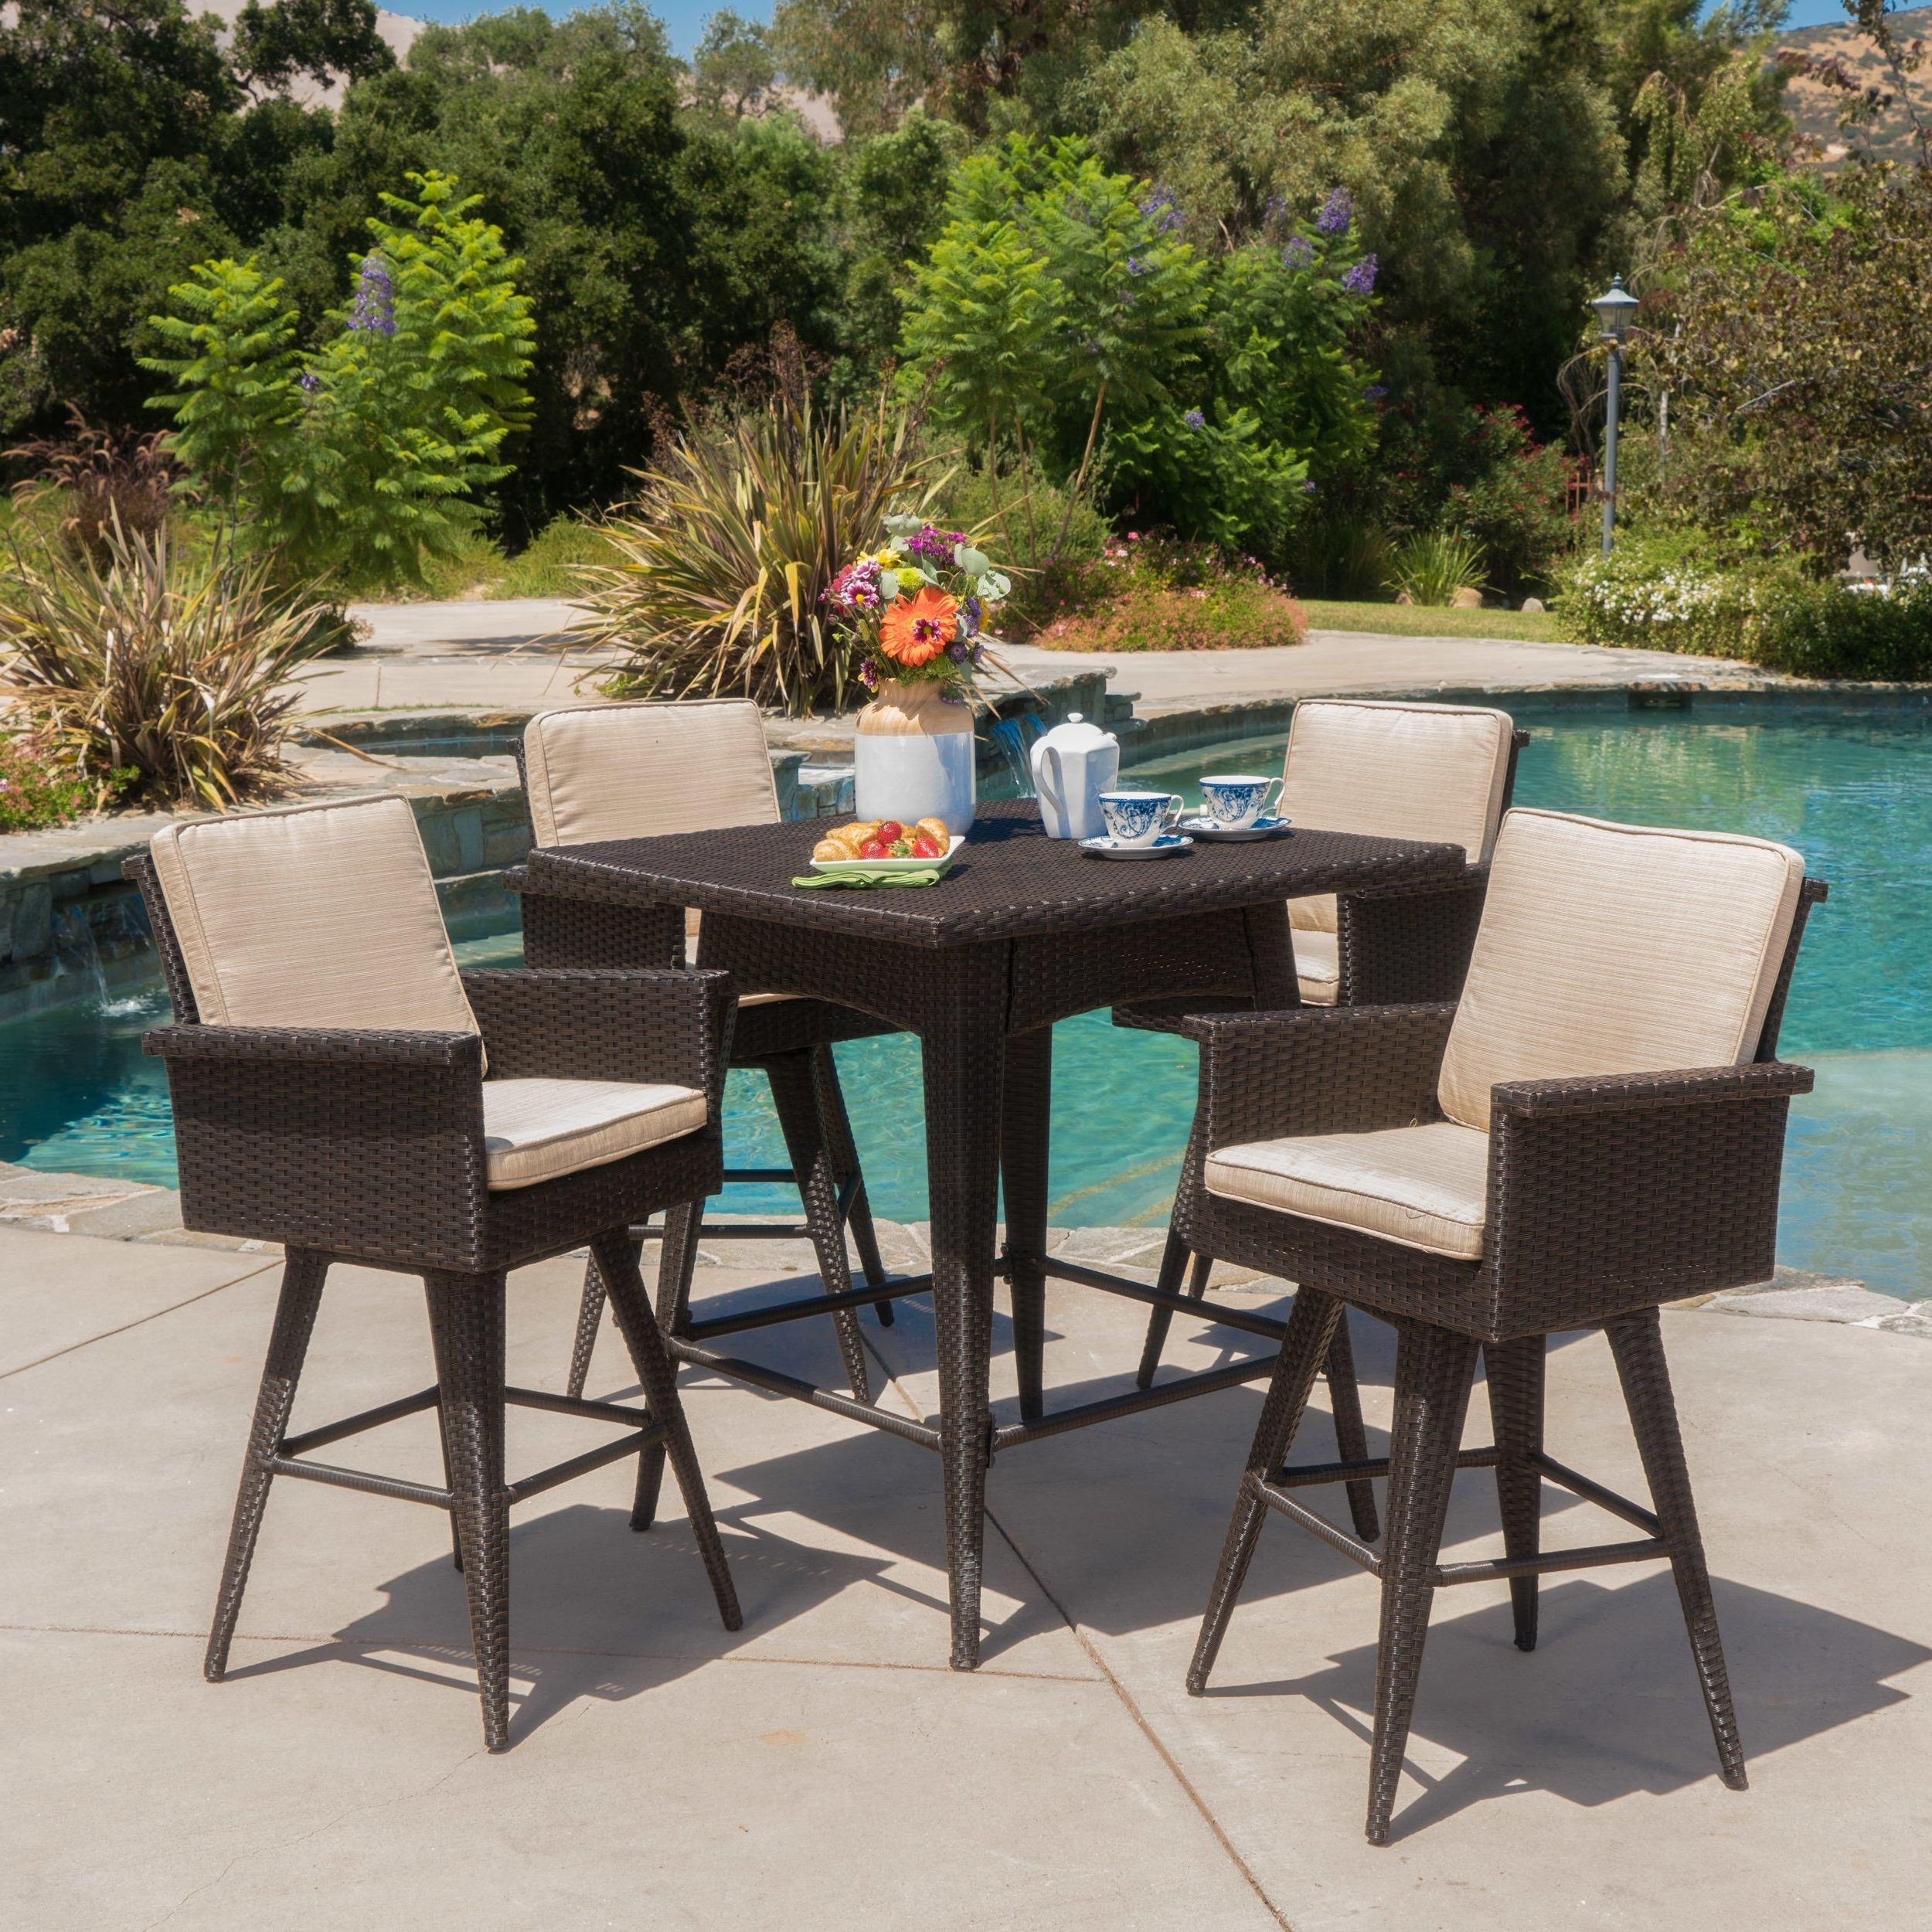 Marbella Dining Tables With Regard To Most Current Shop Marbella Outdoor 5 Piece Square Wicker Dining Set With (View 14 of 25)